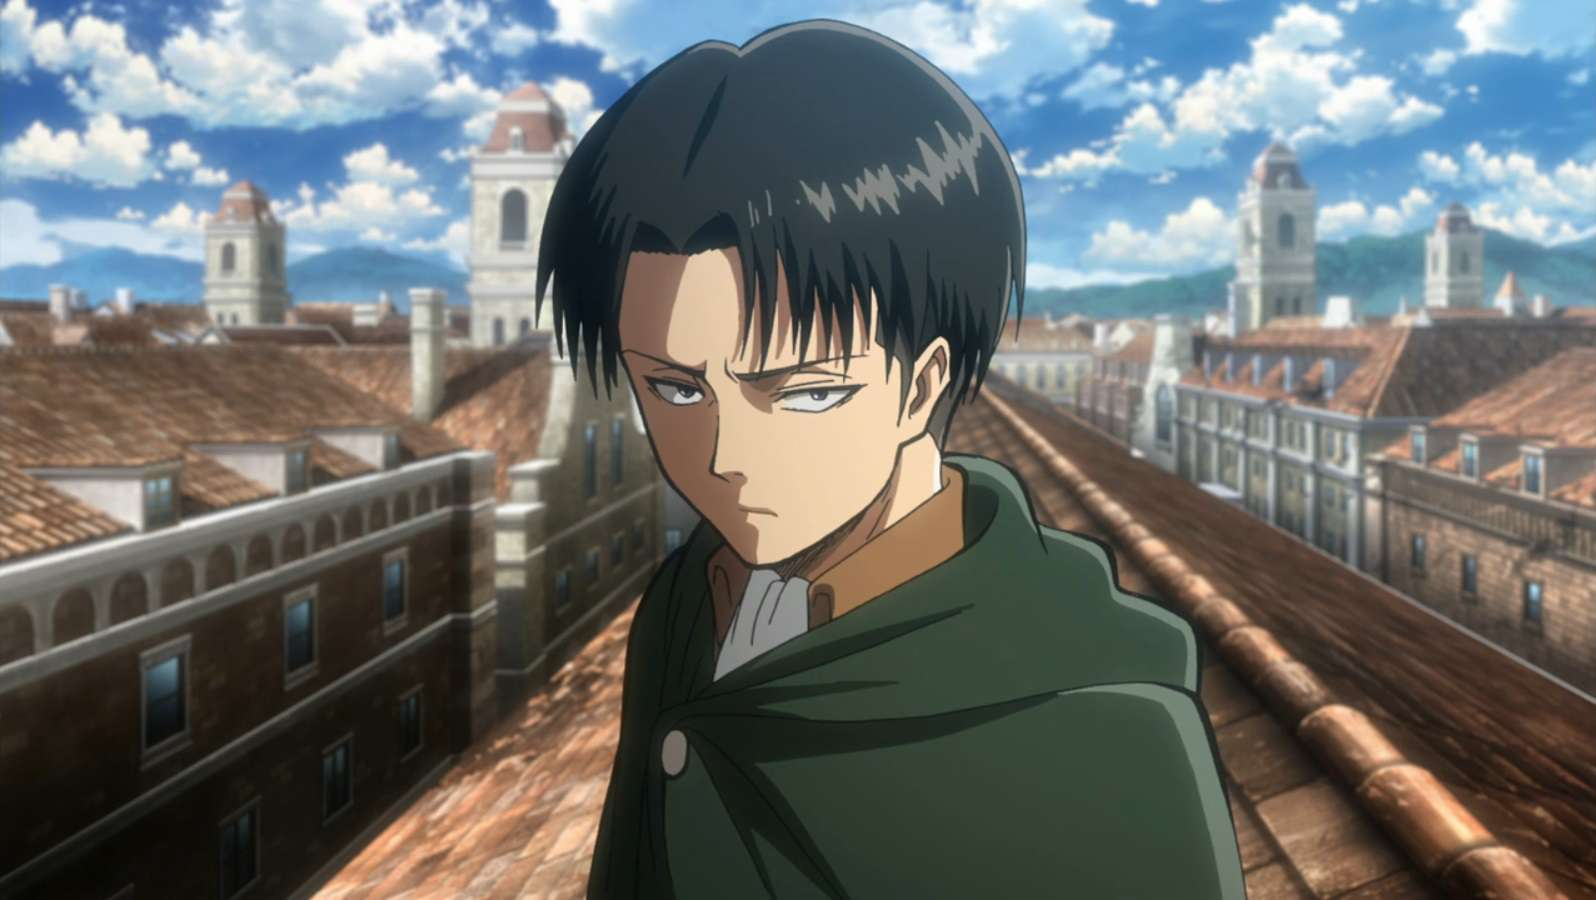 5 Strongest Attack On Titan Characters